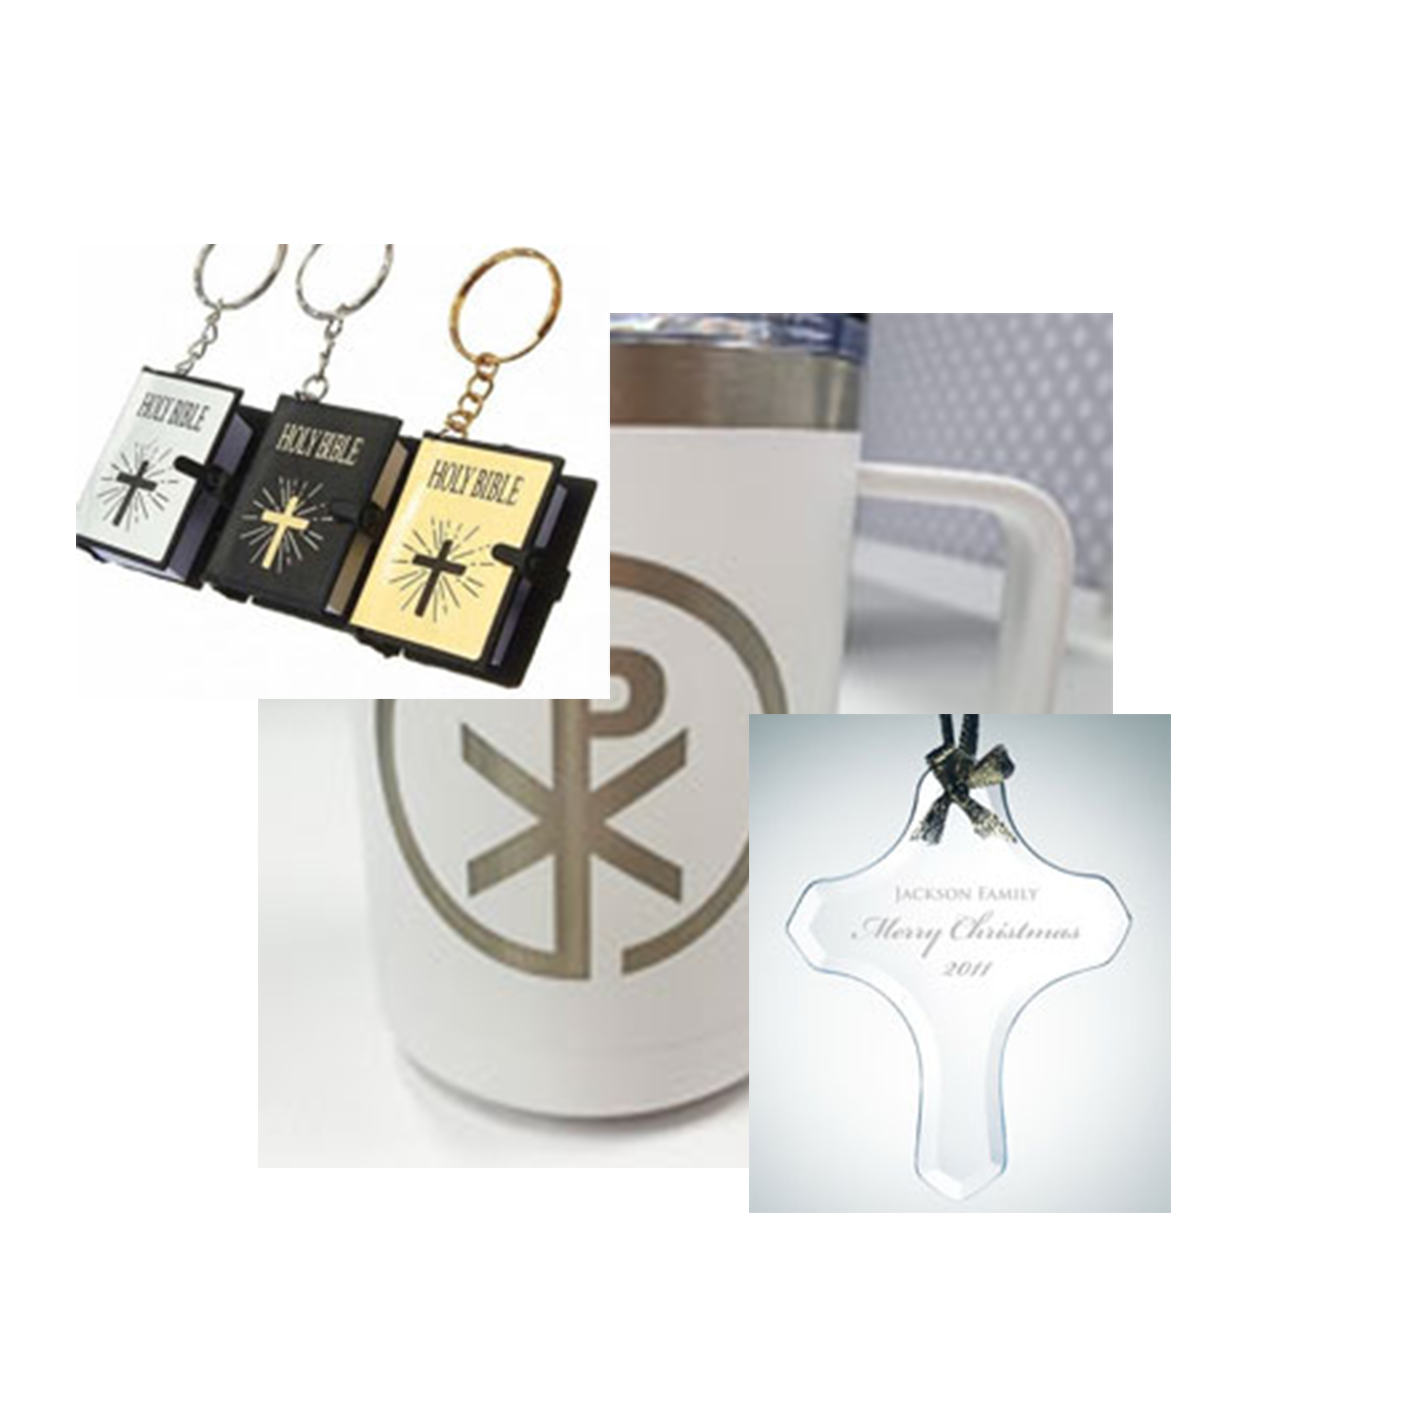 promo items for church